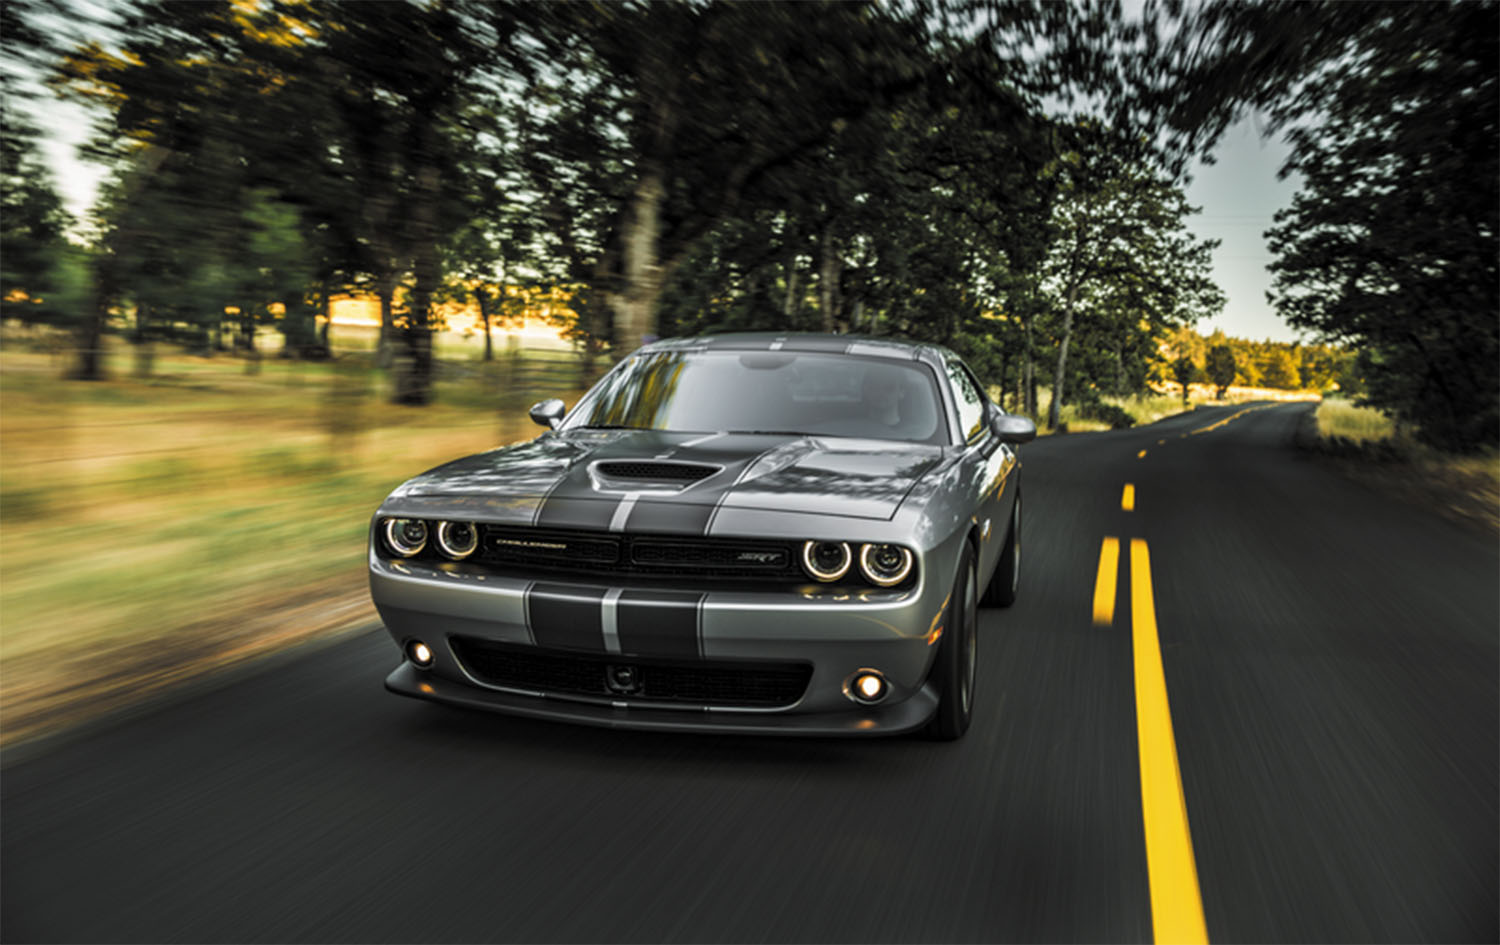 New Dodge available in Superior, WI at Superior Chrysler Dodge Jeep Ram